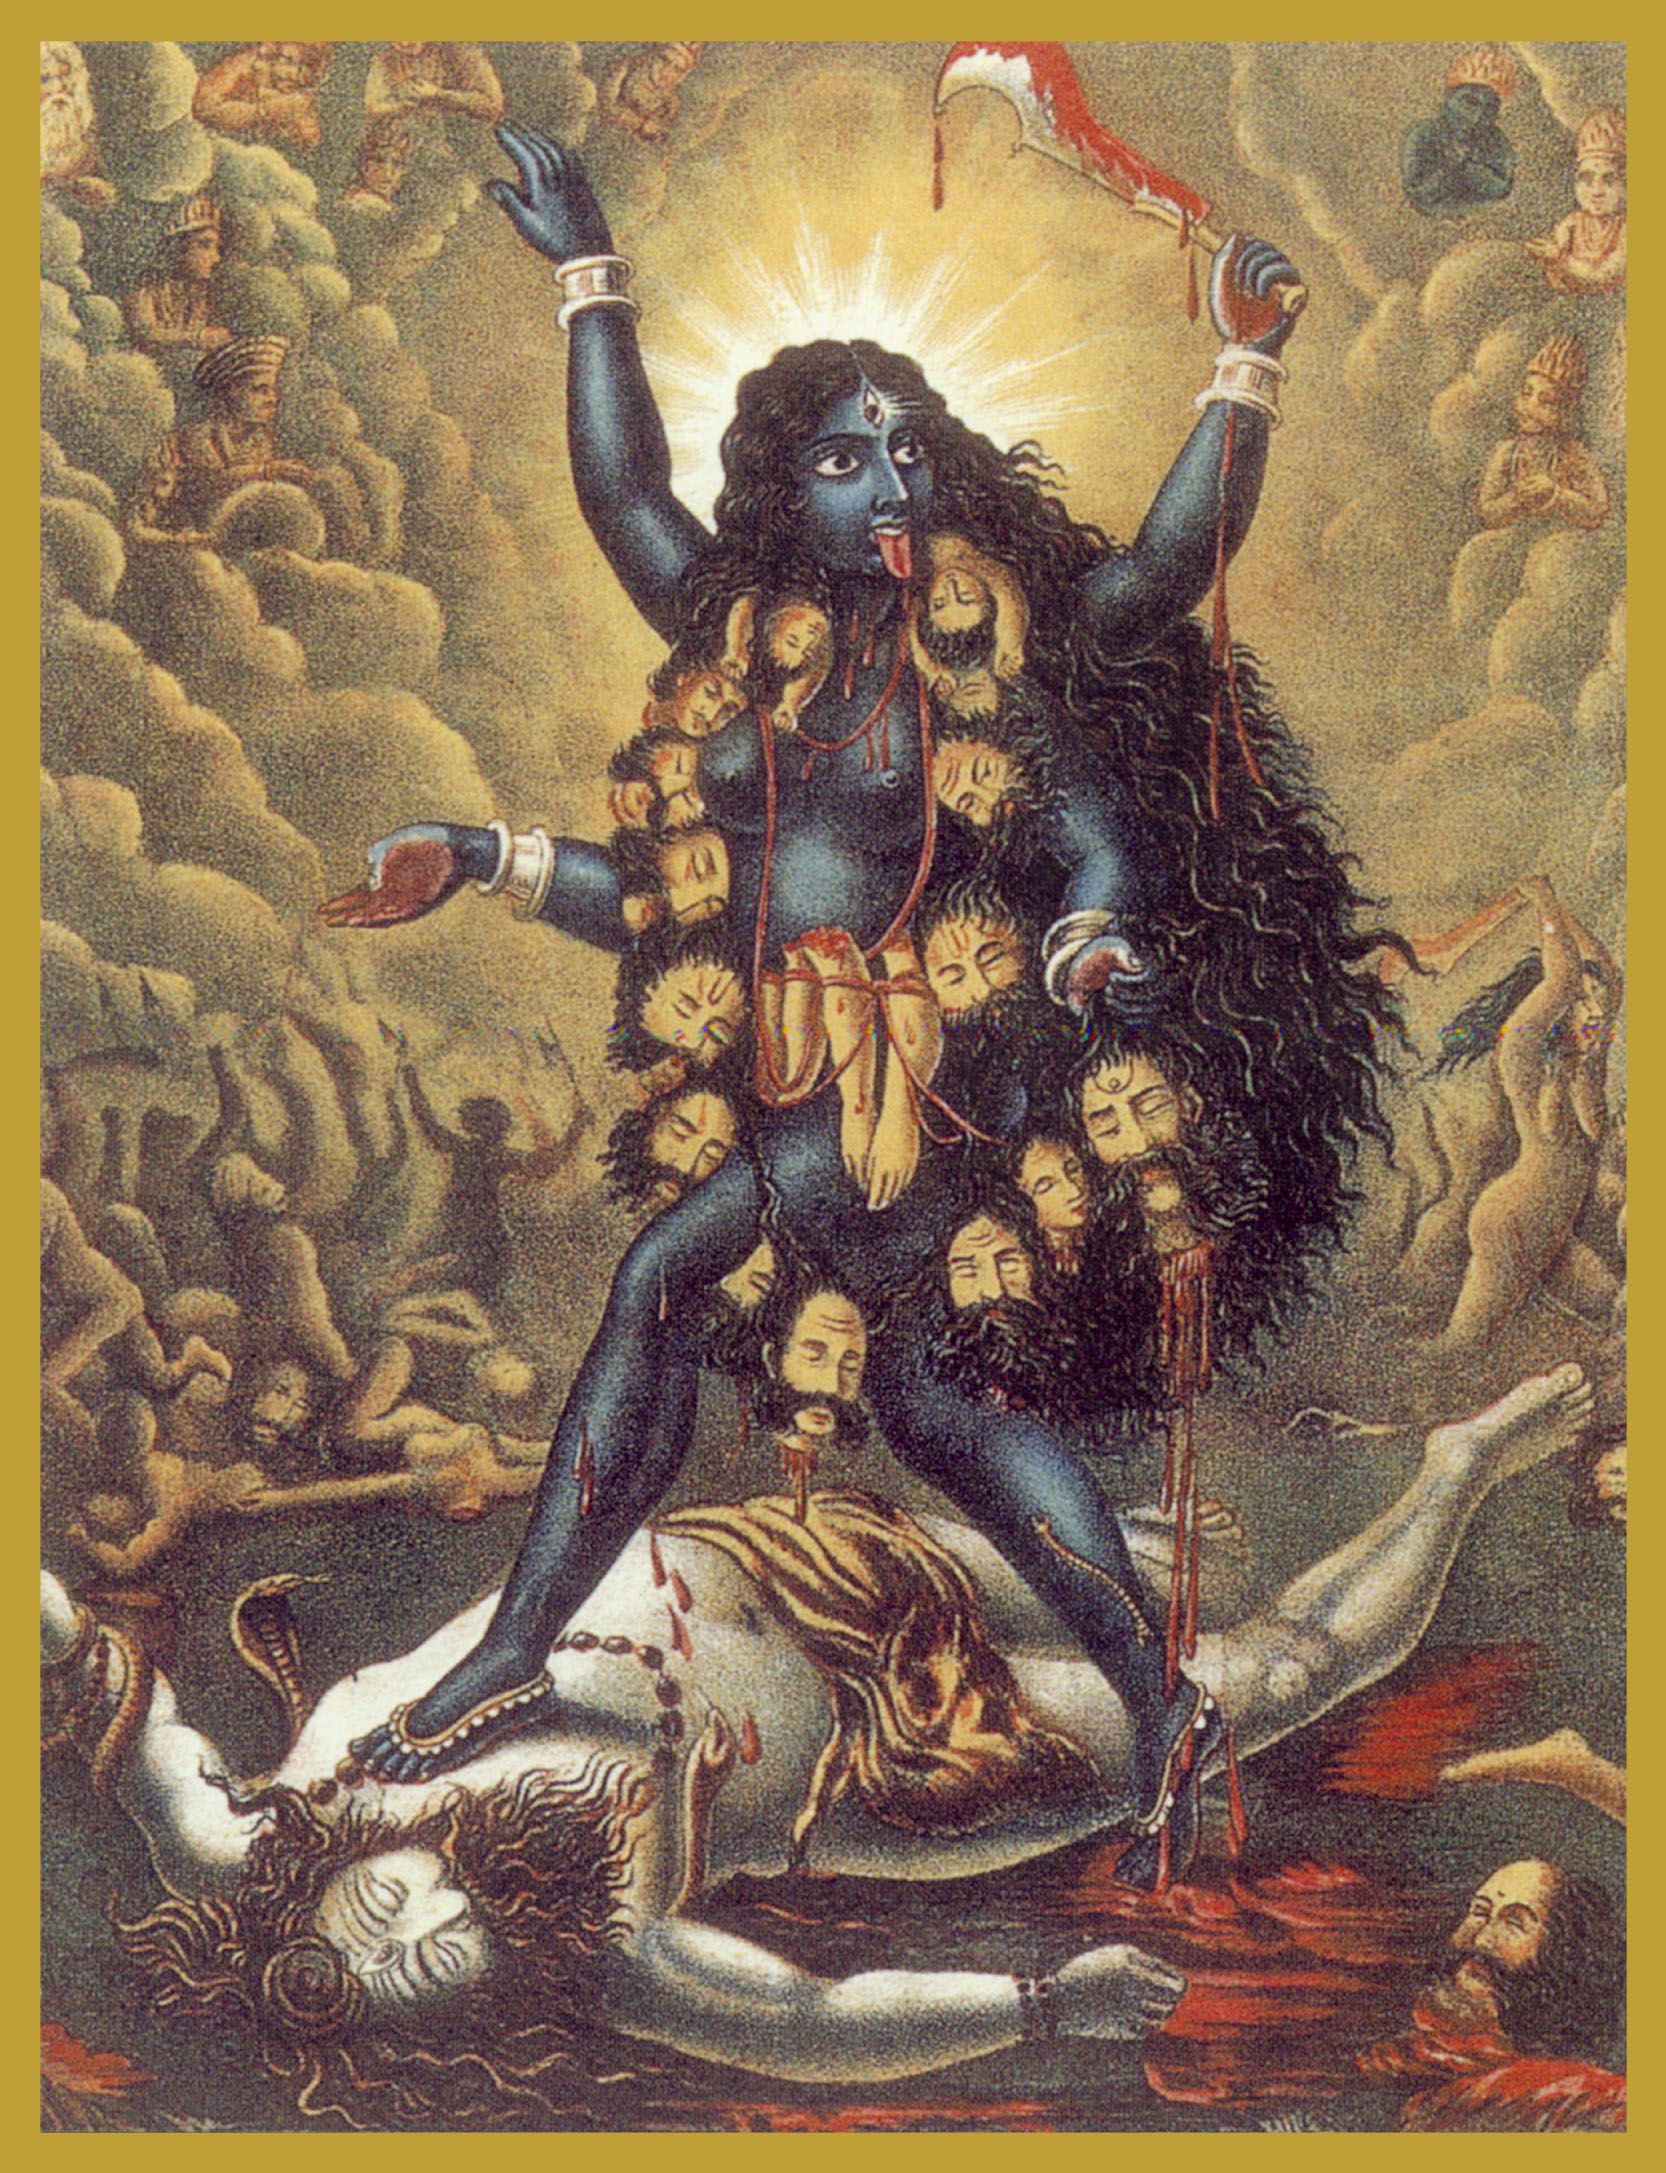 KAL-BLK - BLACK KALISlayer of Time & Death, Destroyer of IllusionKali literally means both 'death' and 'time.' Goddess Kali represents the state where time, space and causation have disappeared.She is both the destroyer and creatrix and is the consort of Lord Shiva. Durga is Kali's mother.